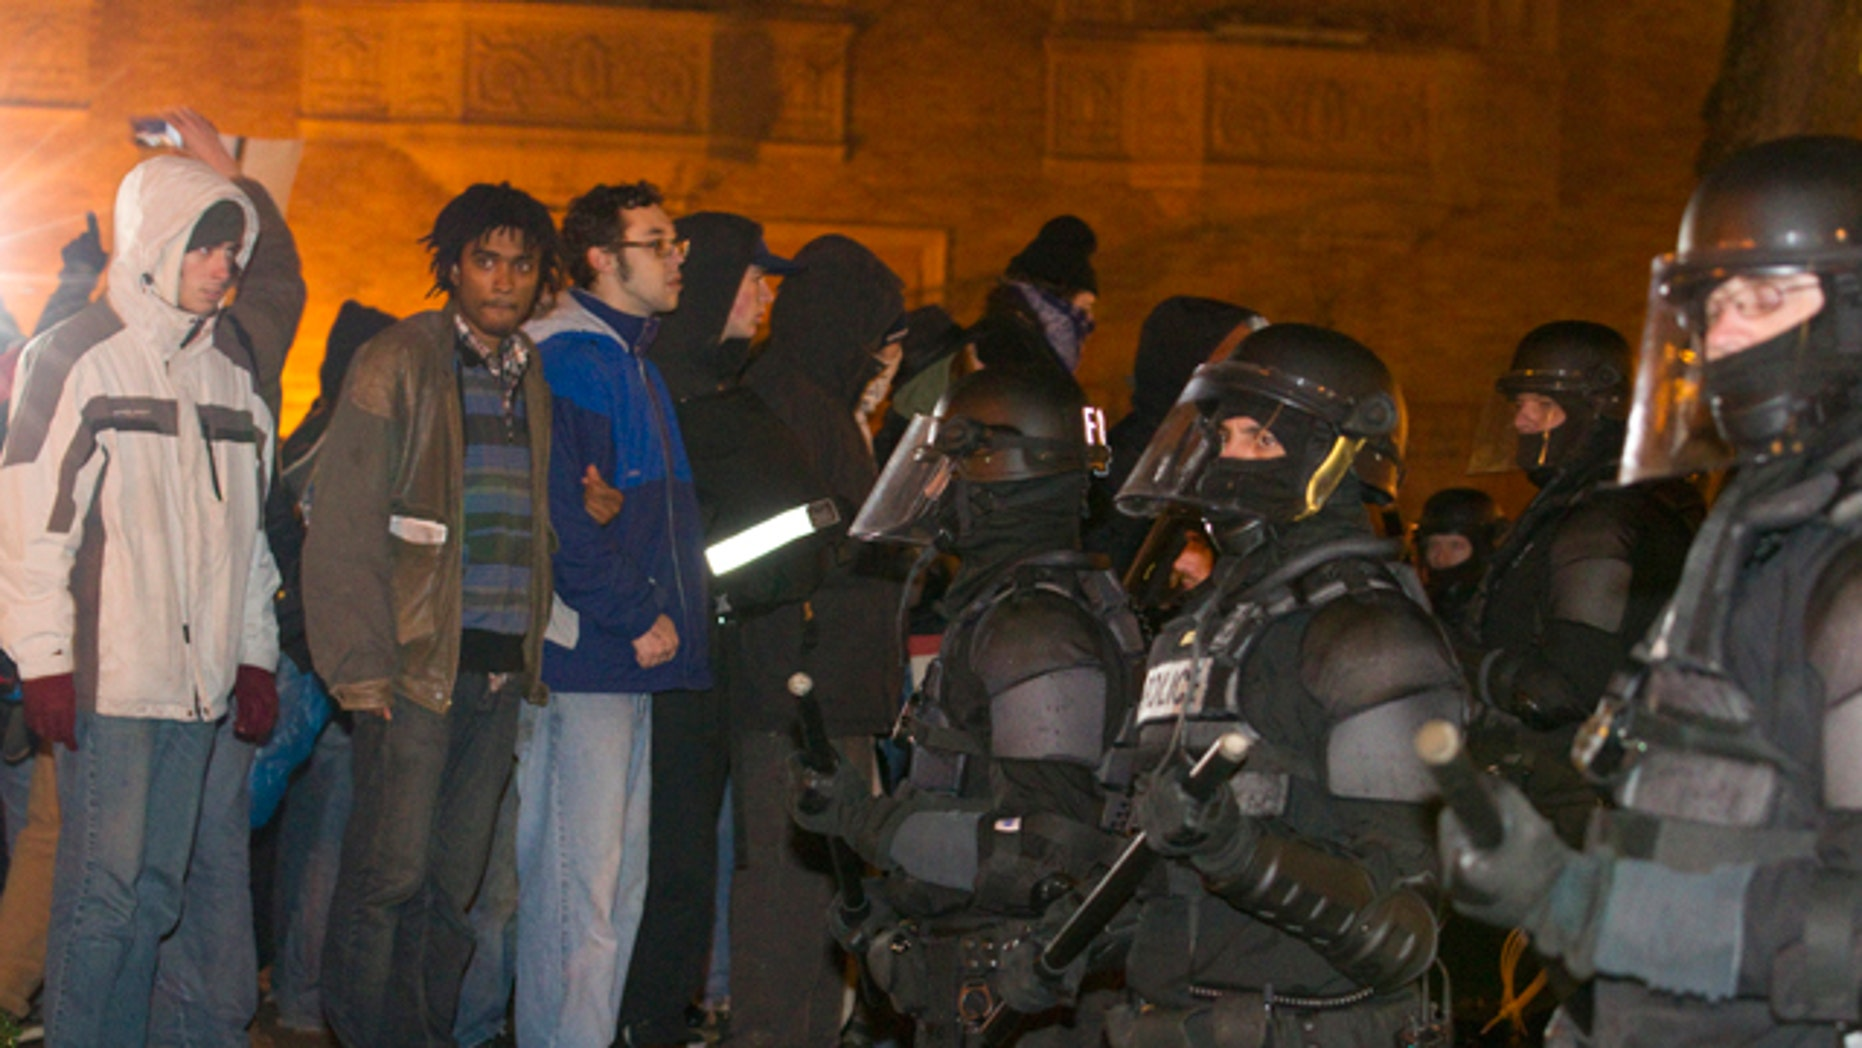 Dec. 3, 2011: Riot police move into a downtown Portland park area and arrested several anti-Wall Street protesters after they refused to vacate the park.